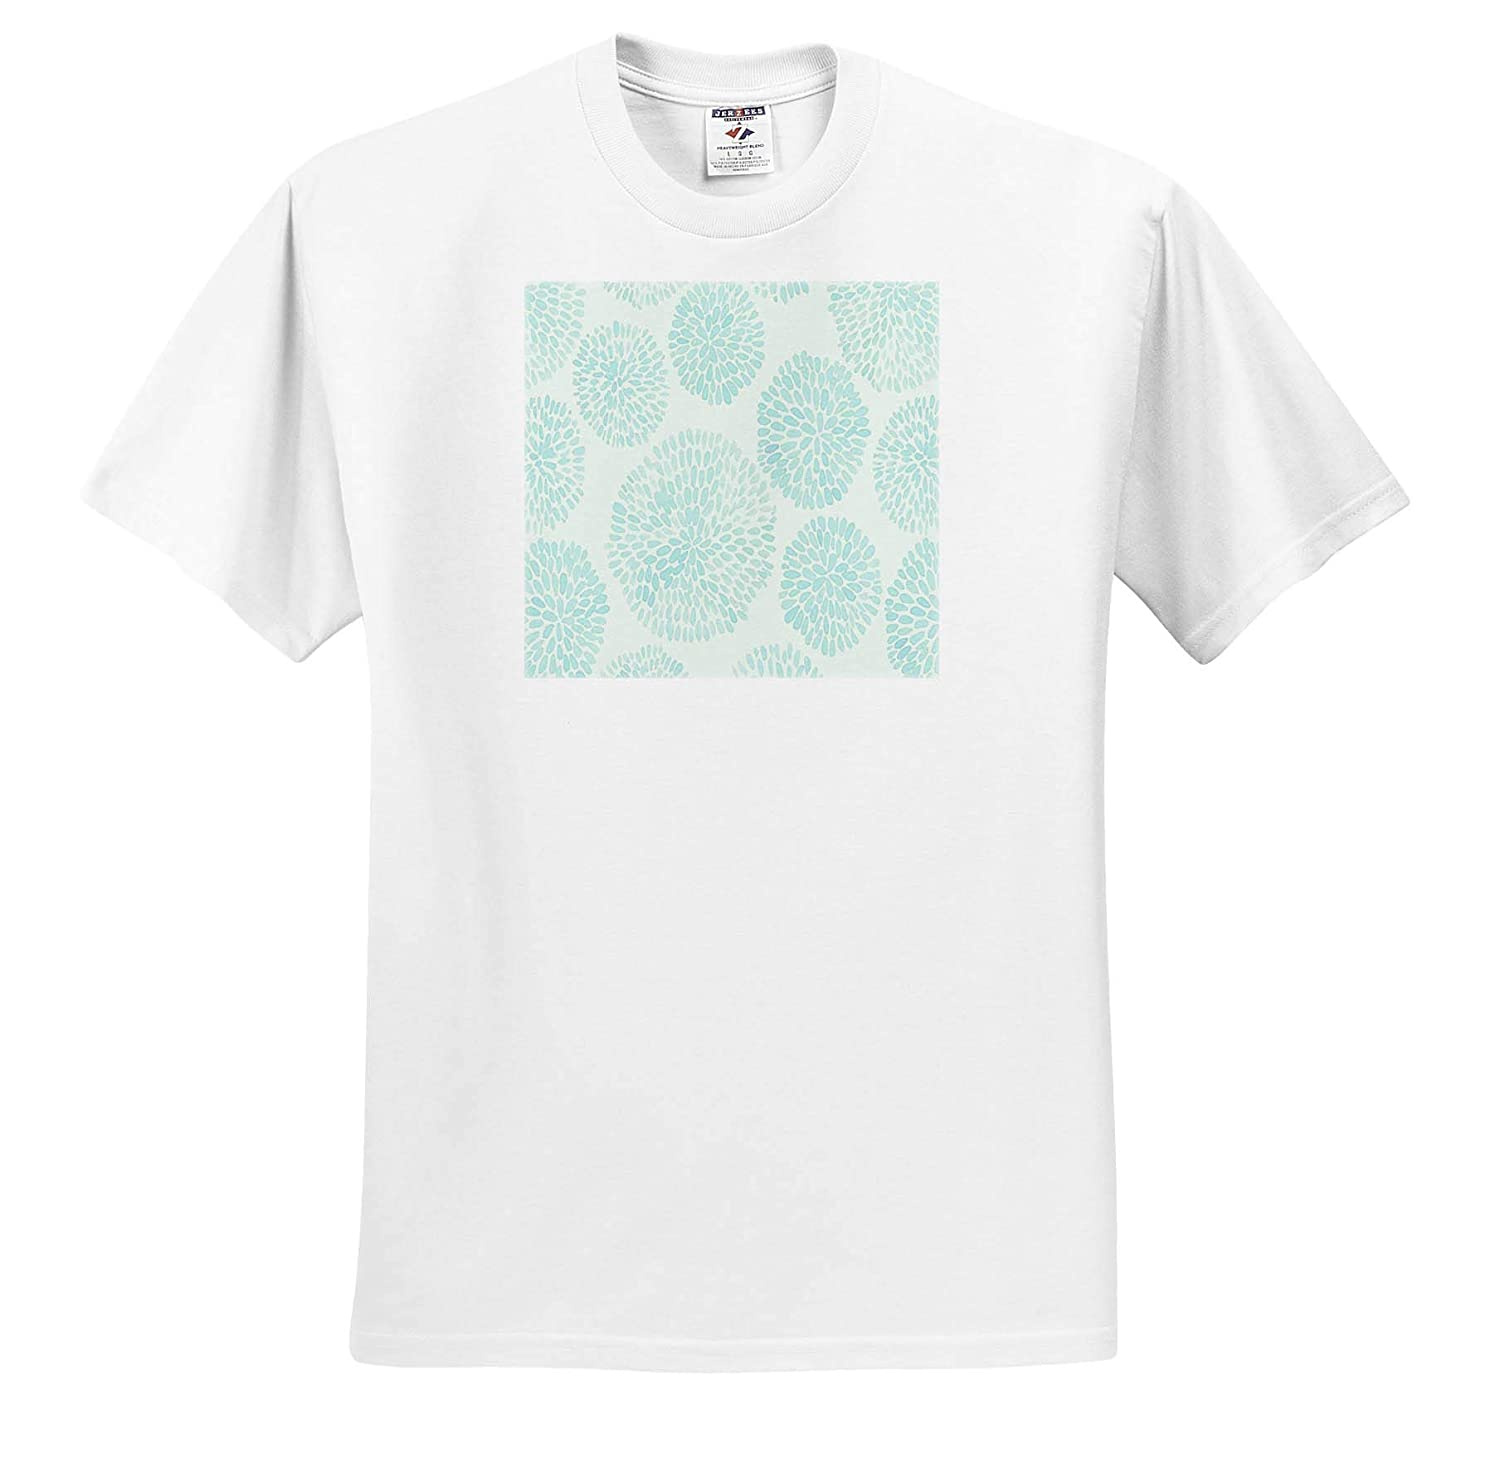 3dRose Lens Art by Florene All Things Aqua ts/_317102 Image of Large Pattern of Aqua Pop Flowers Adult T-Shirt XL